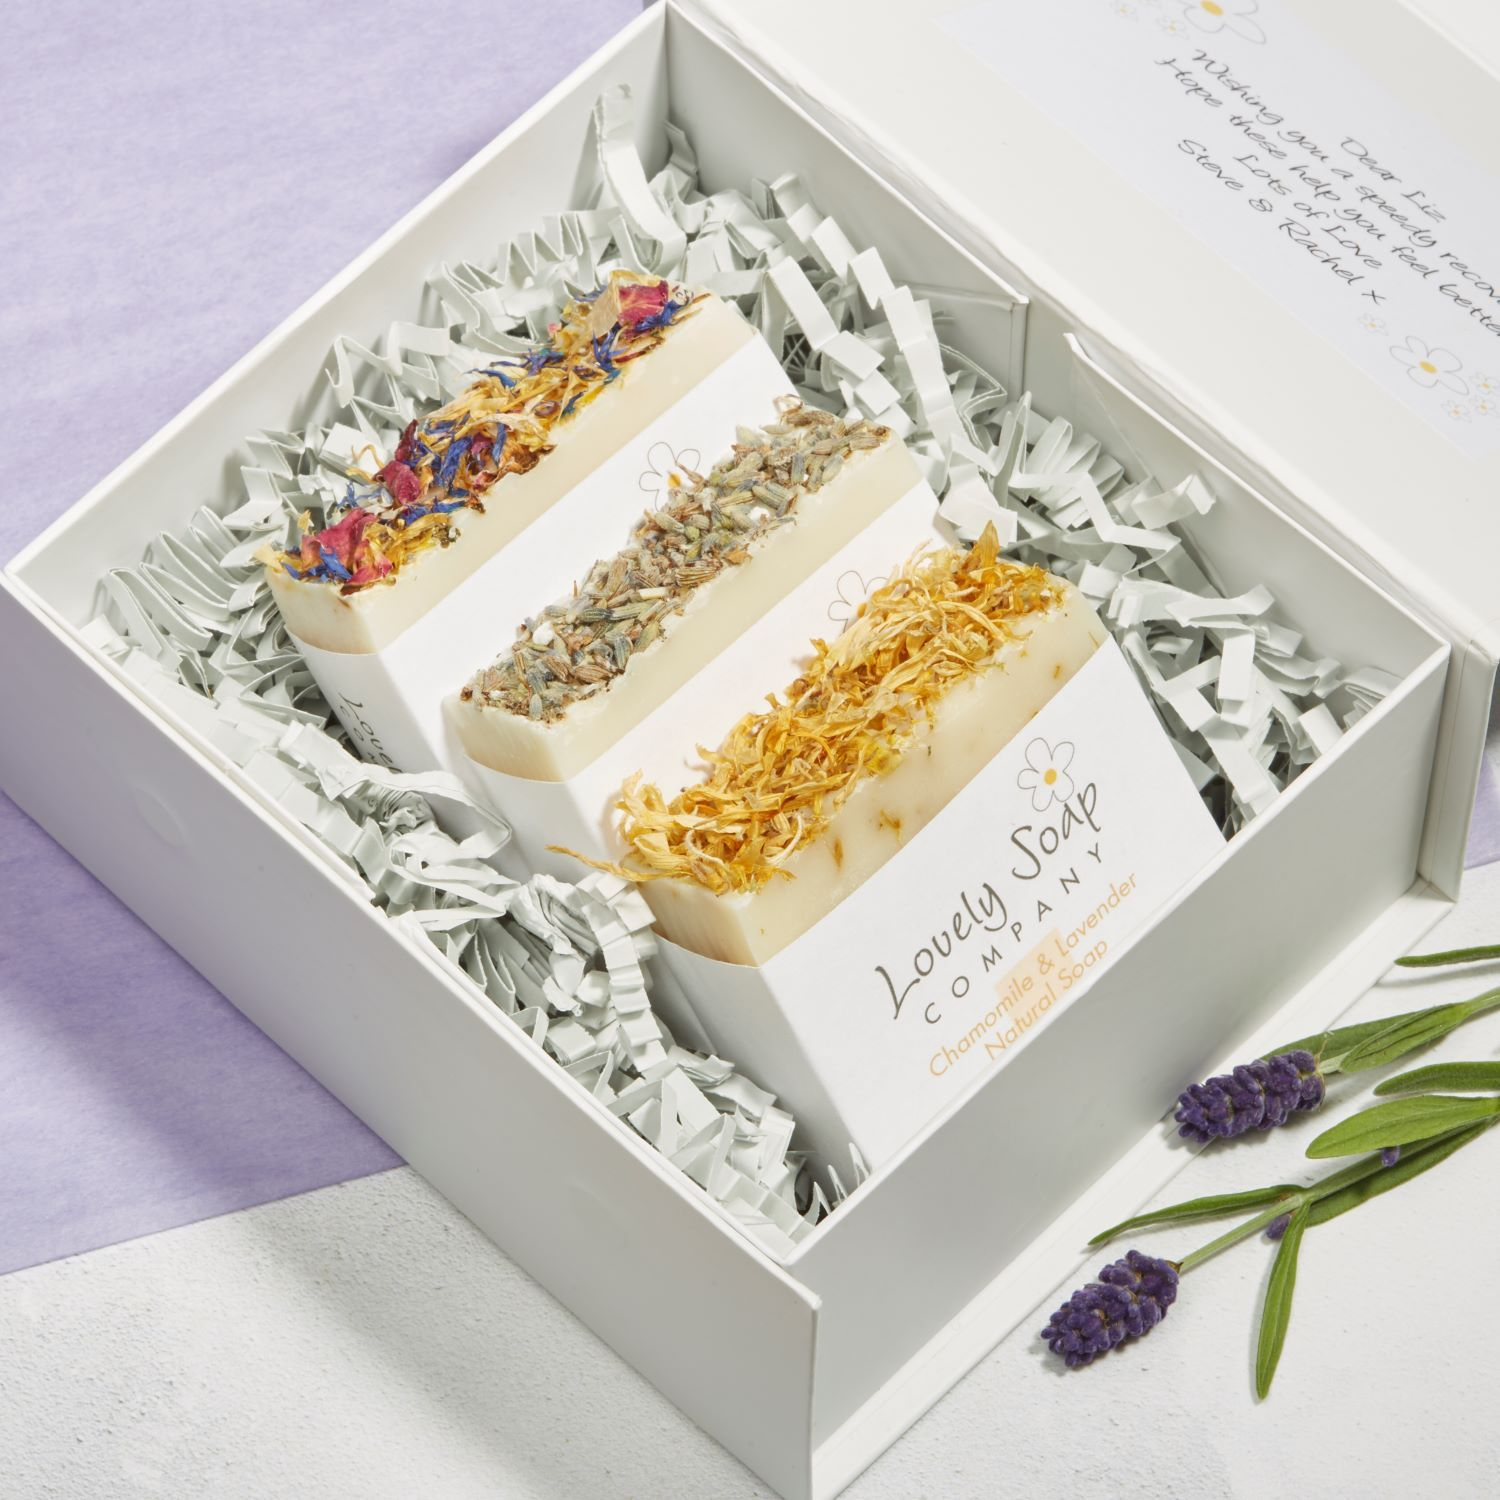 handmade natural soap personalised gift set Lovely Soap Co